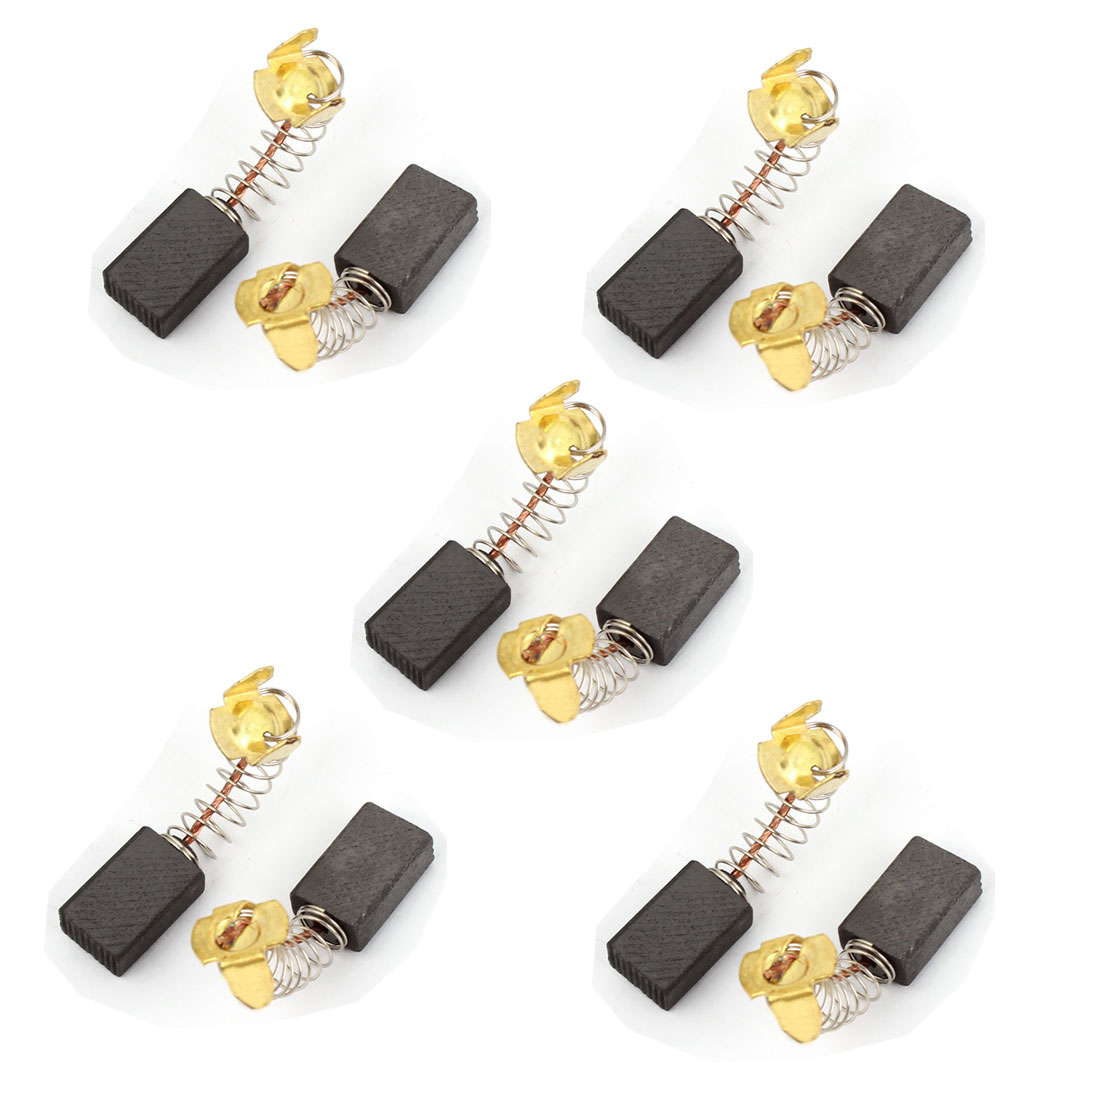 10 Pcs Spare Part Spring Type Electric Drill Motor 15mm x 10mm x 6mm Carbon Brushes